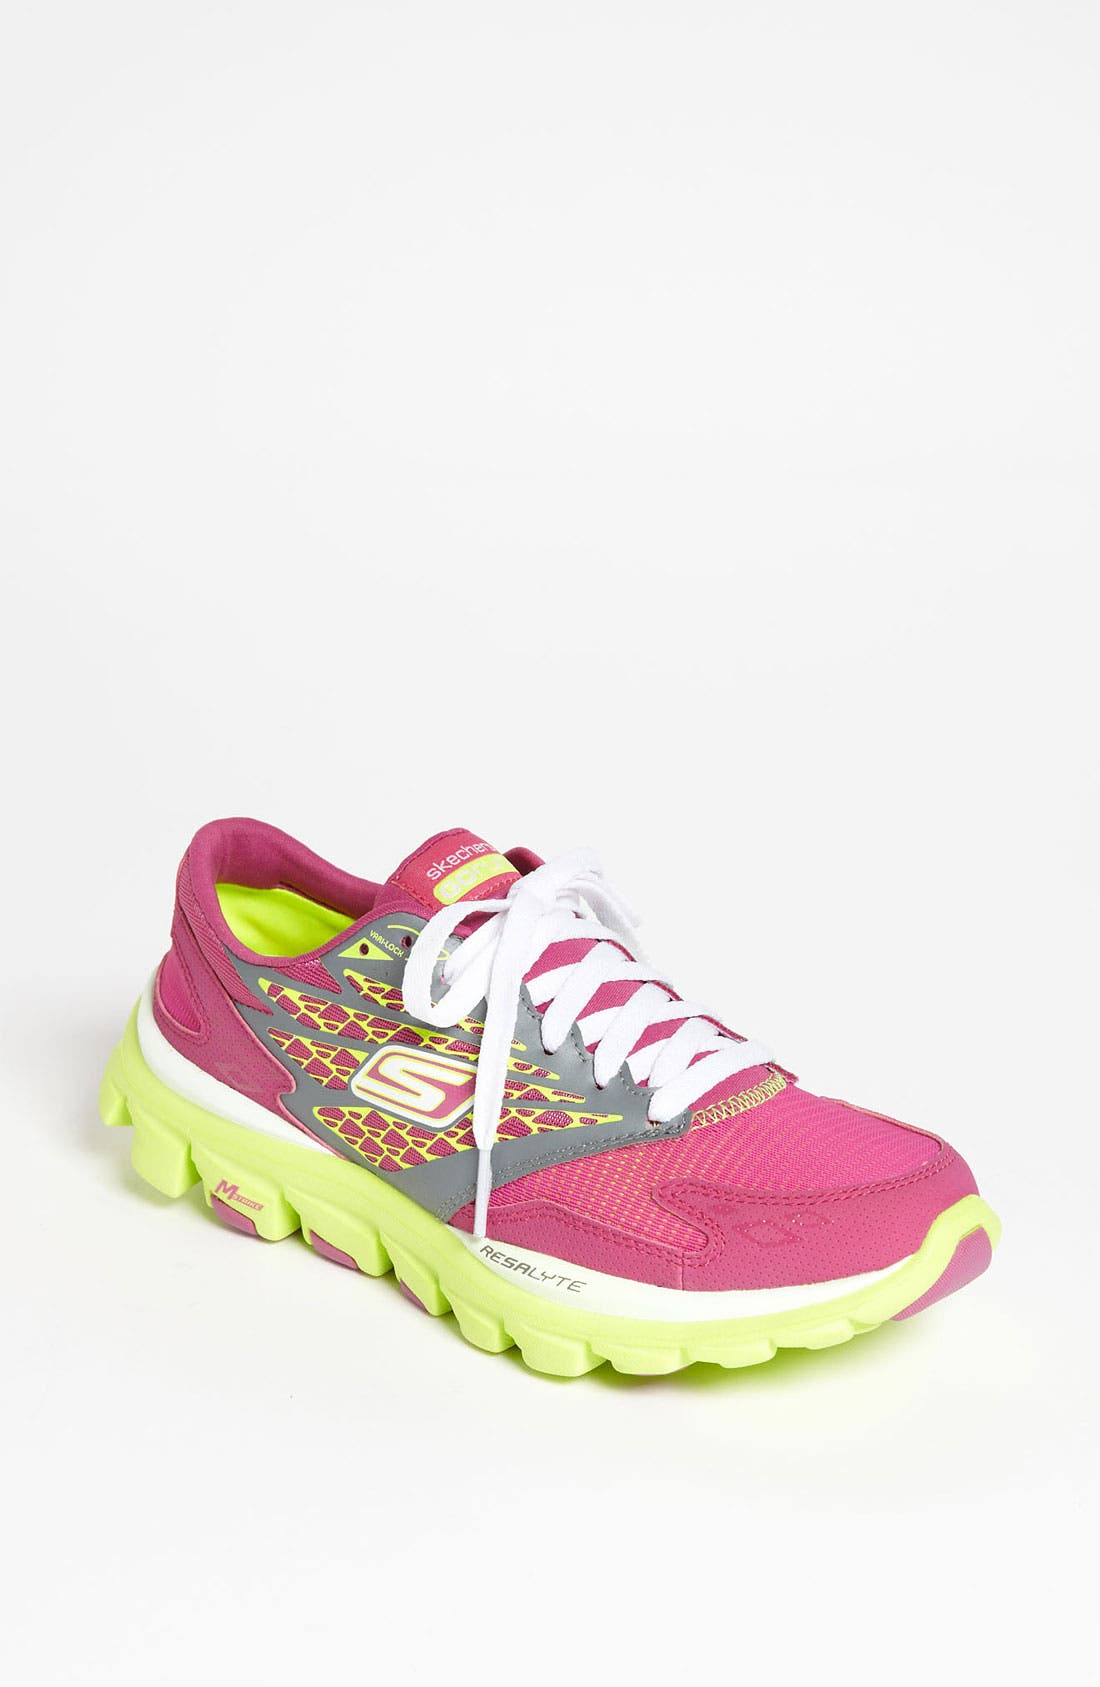 Alternate Image 1 Selected - SKECHERS 'GOrun Ride' Running Shoe (Women)